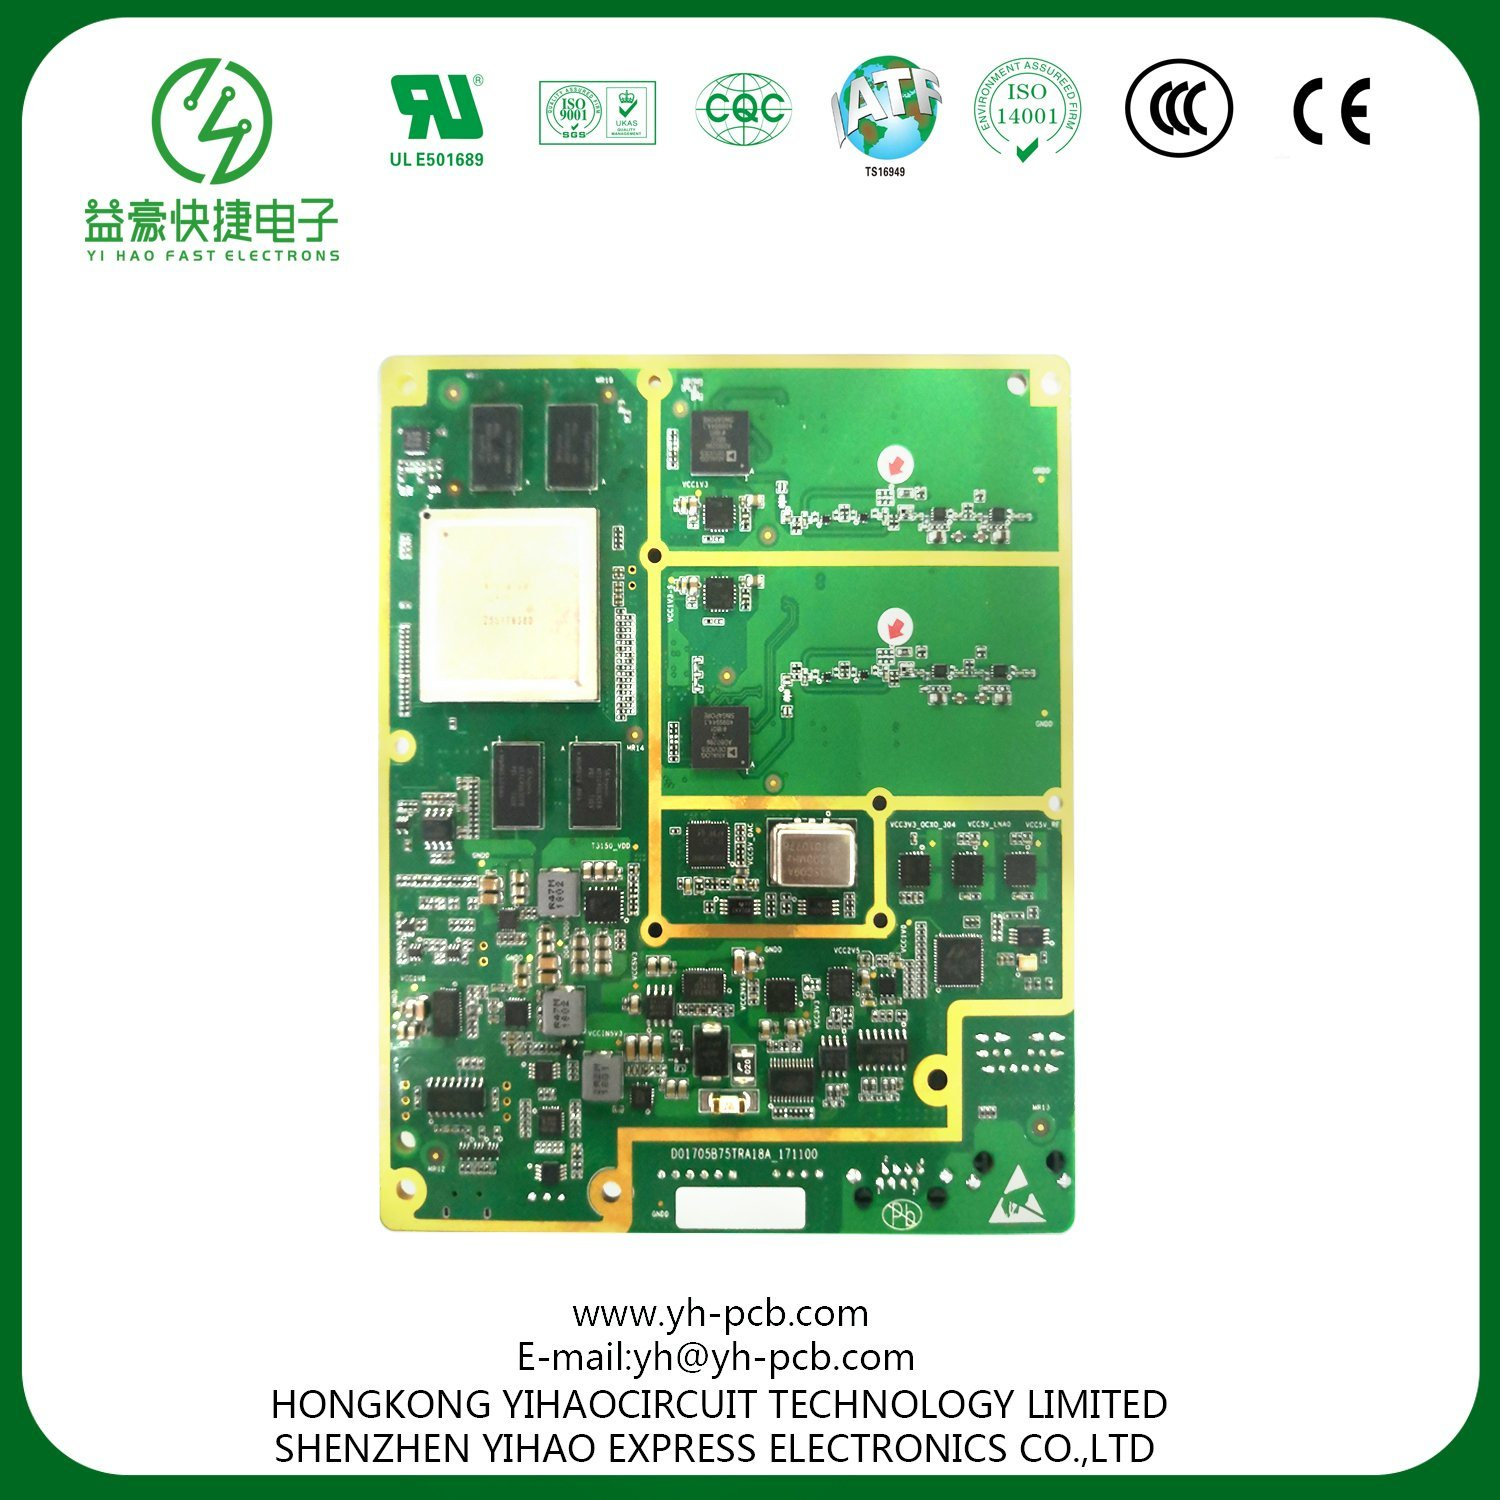 Wholesale Smt Pcb Pcba Buy Reliable From Shenzhen Oem Electronic Printed Circuit Board Manufacturerpcb Electronics Fabrication Assembly With High Quality